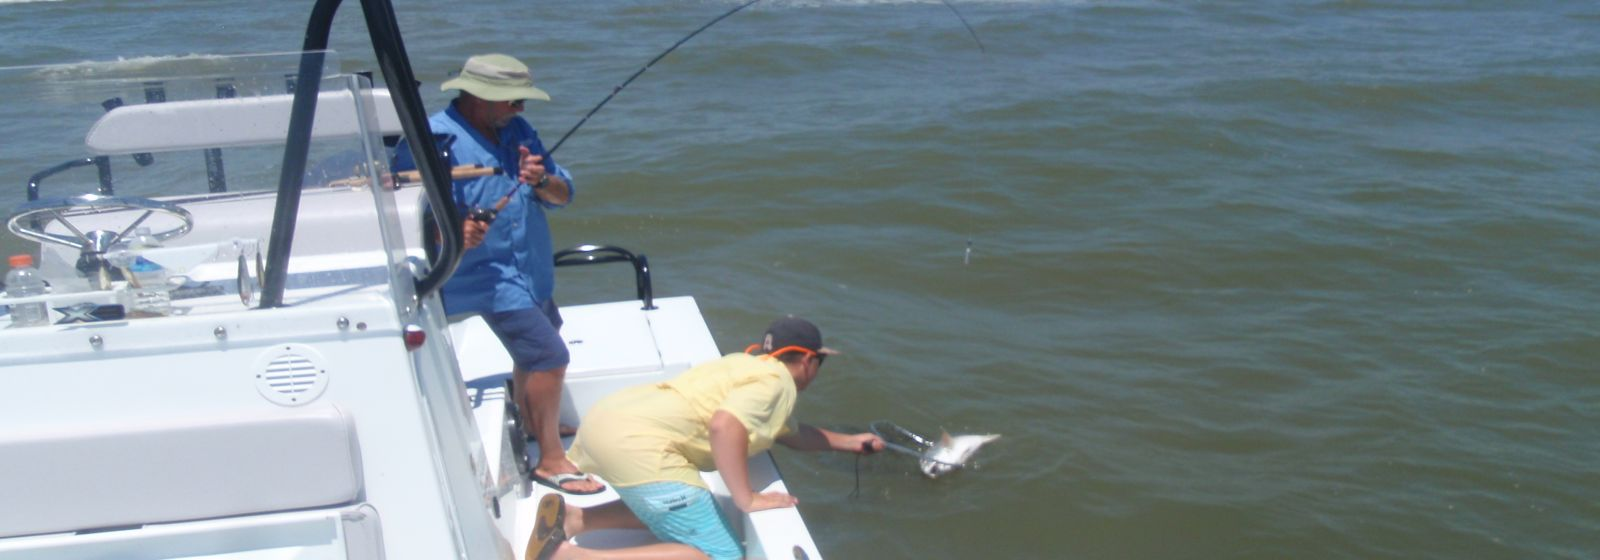 Matagorda bay fishing charters and duck hunting port for Deep sea fishing houston